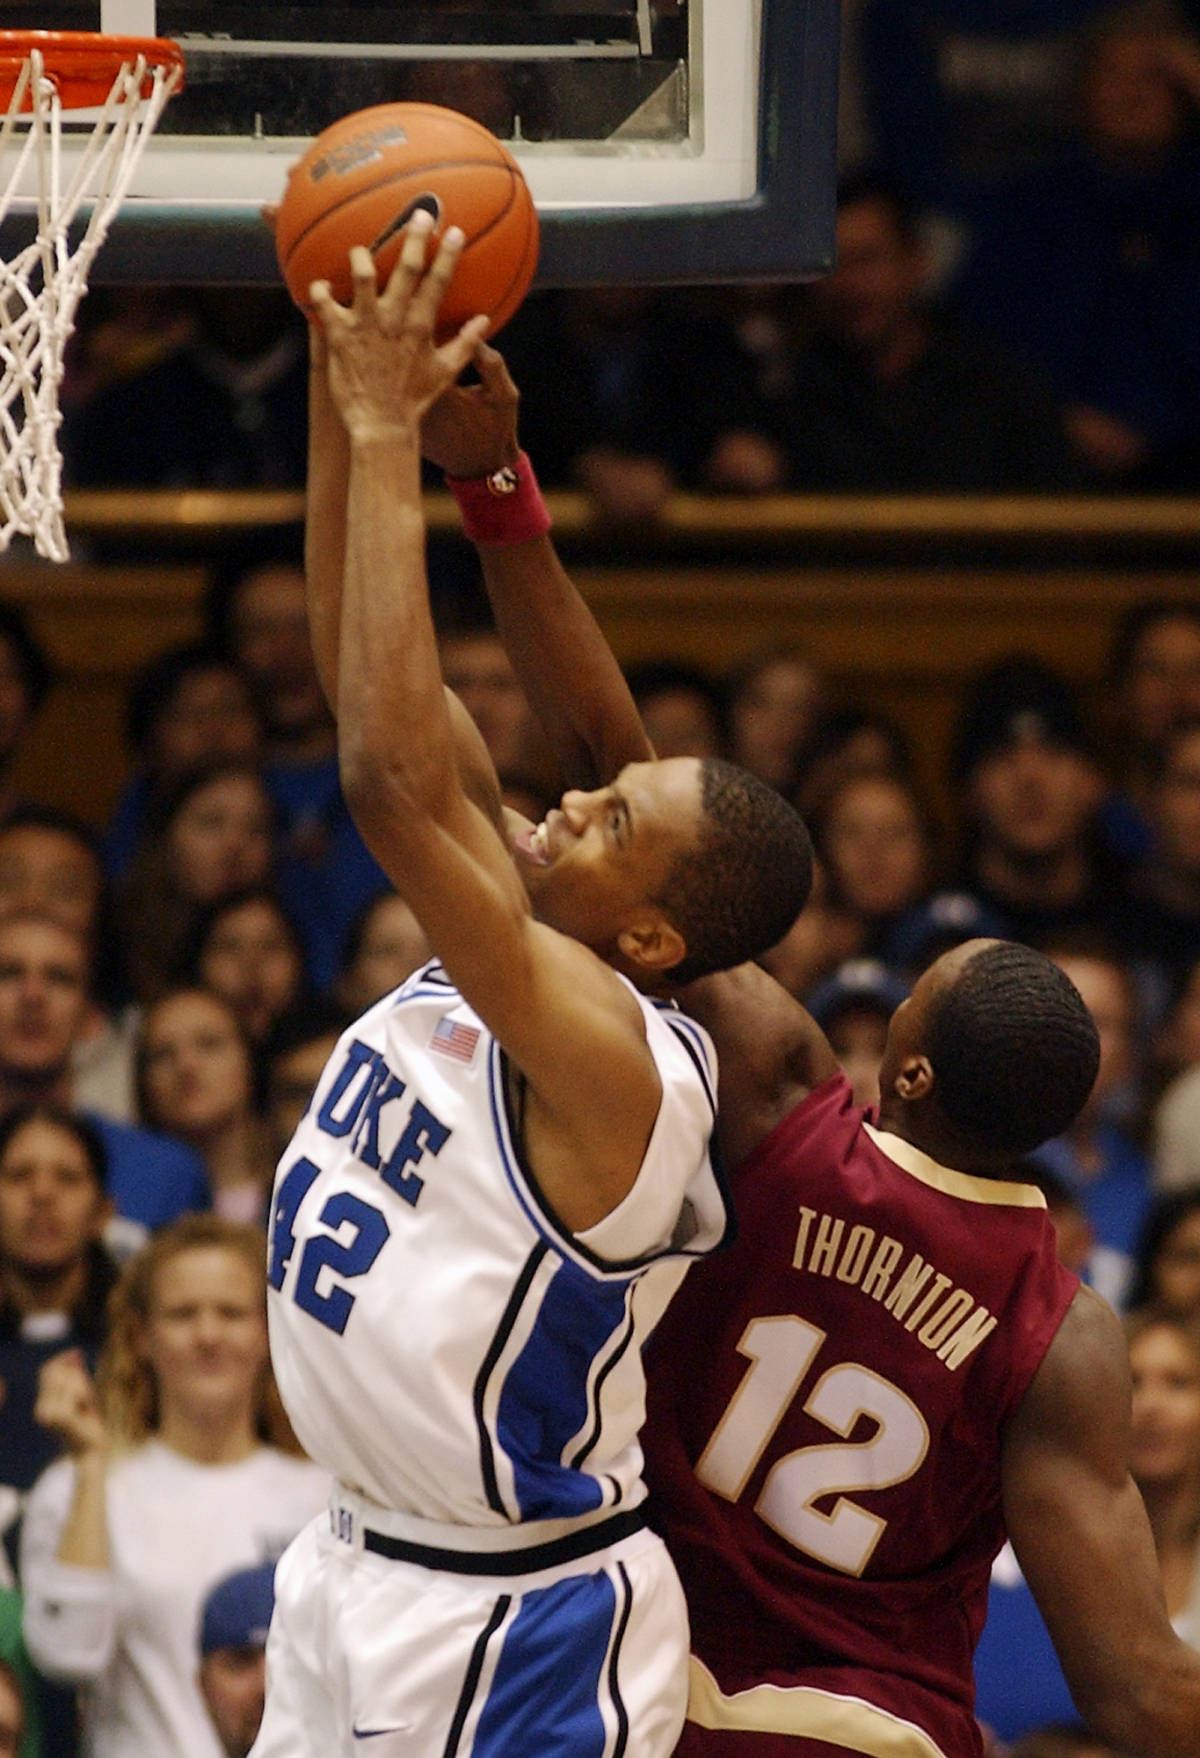 Duke's Lance Thomas (42) pulls down a rebound over Florida State's Al Thornton (12) in the first half of a basketball game in Durham, N.C., on Sunday, Feb. 4, 2007. (AP Photo/Sara D. Davis)